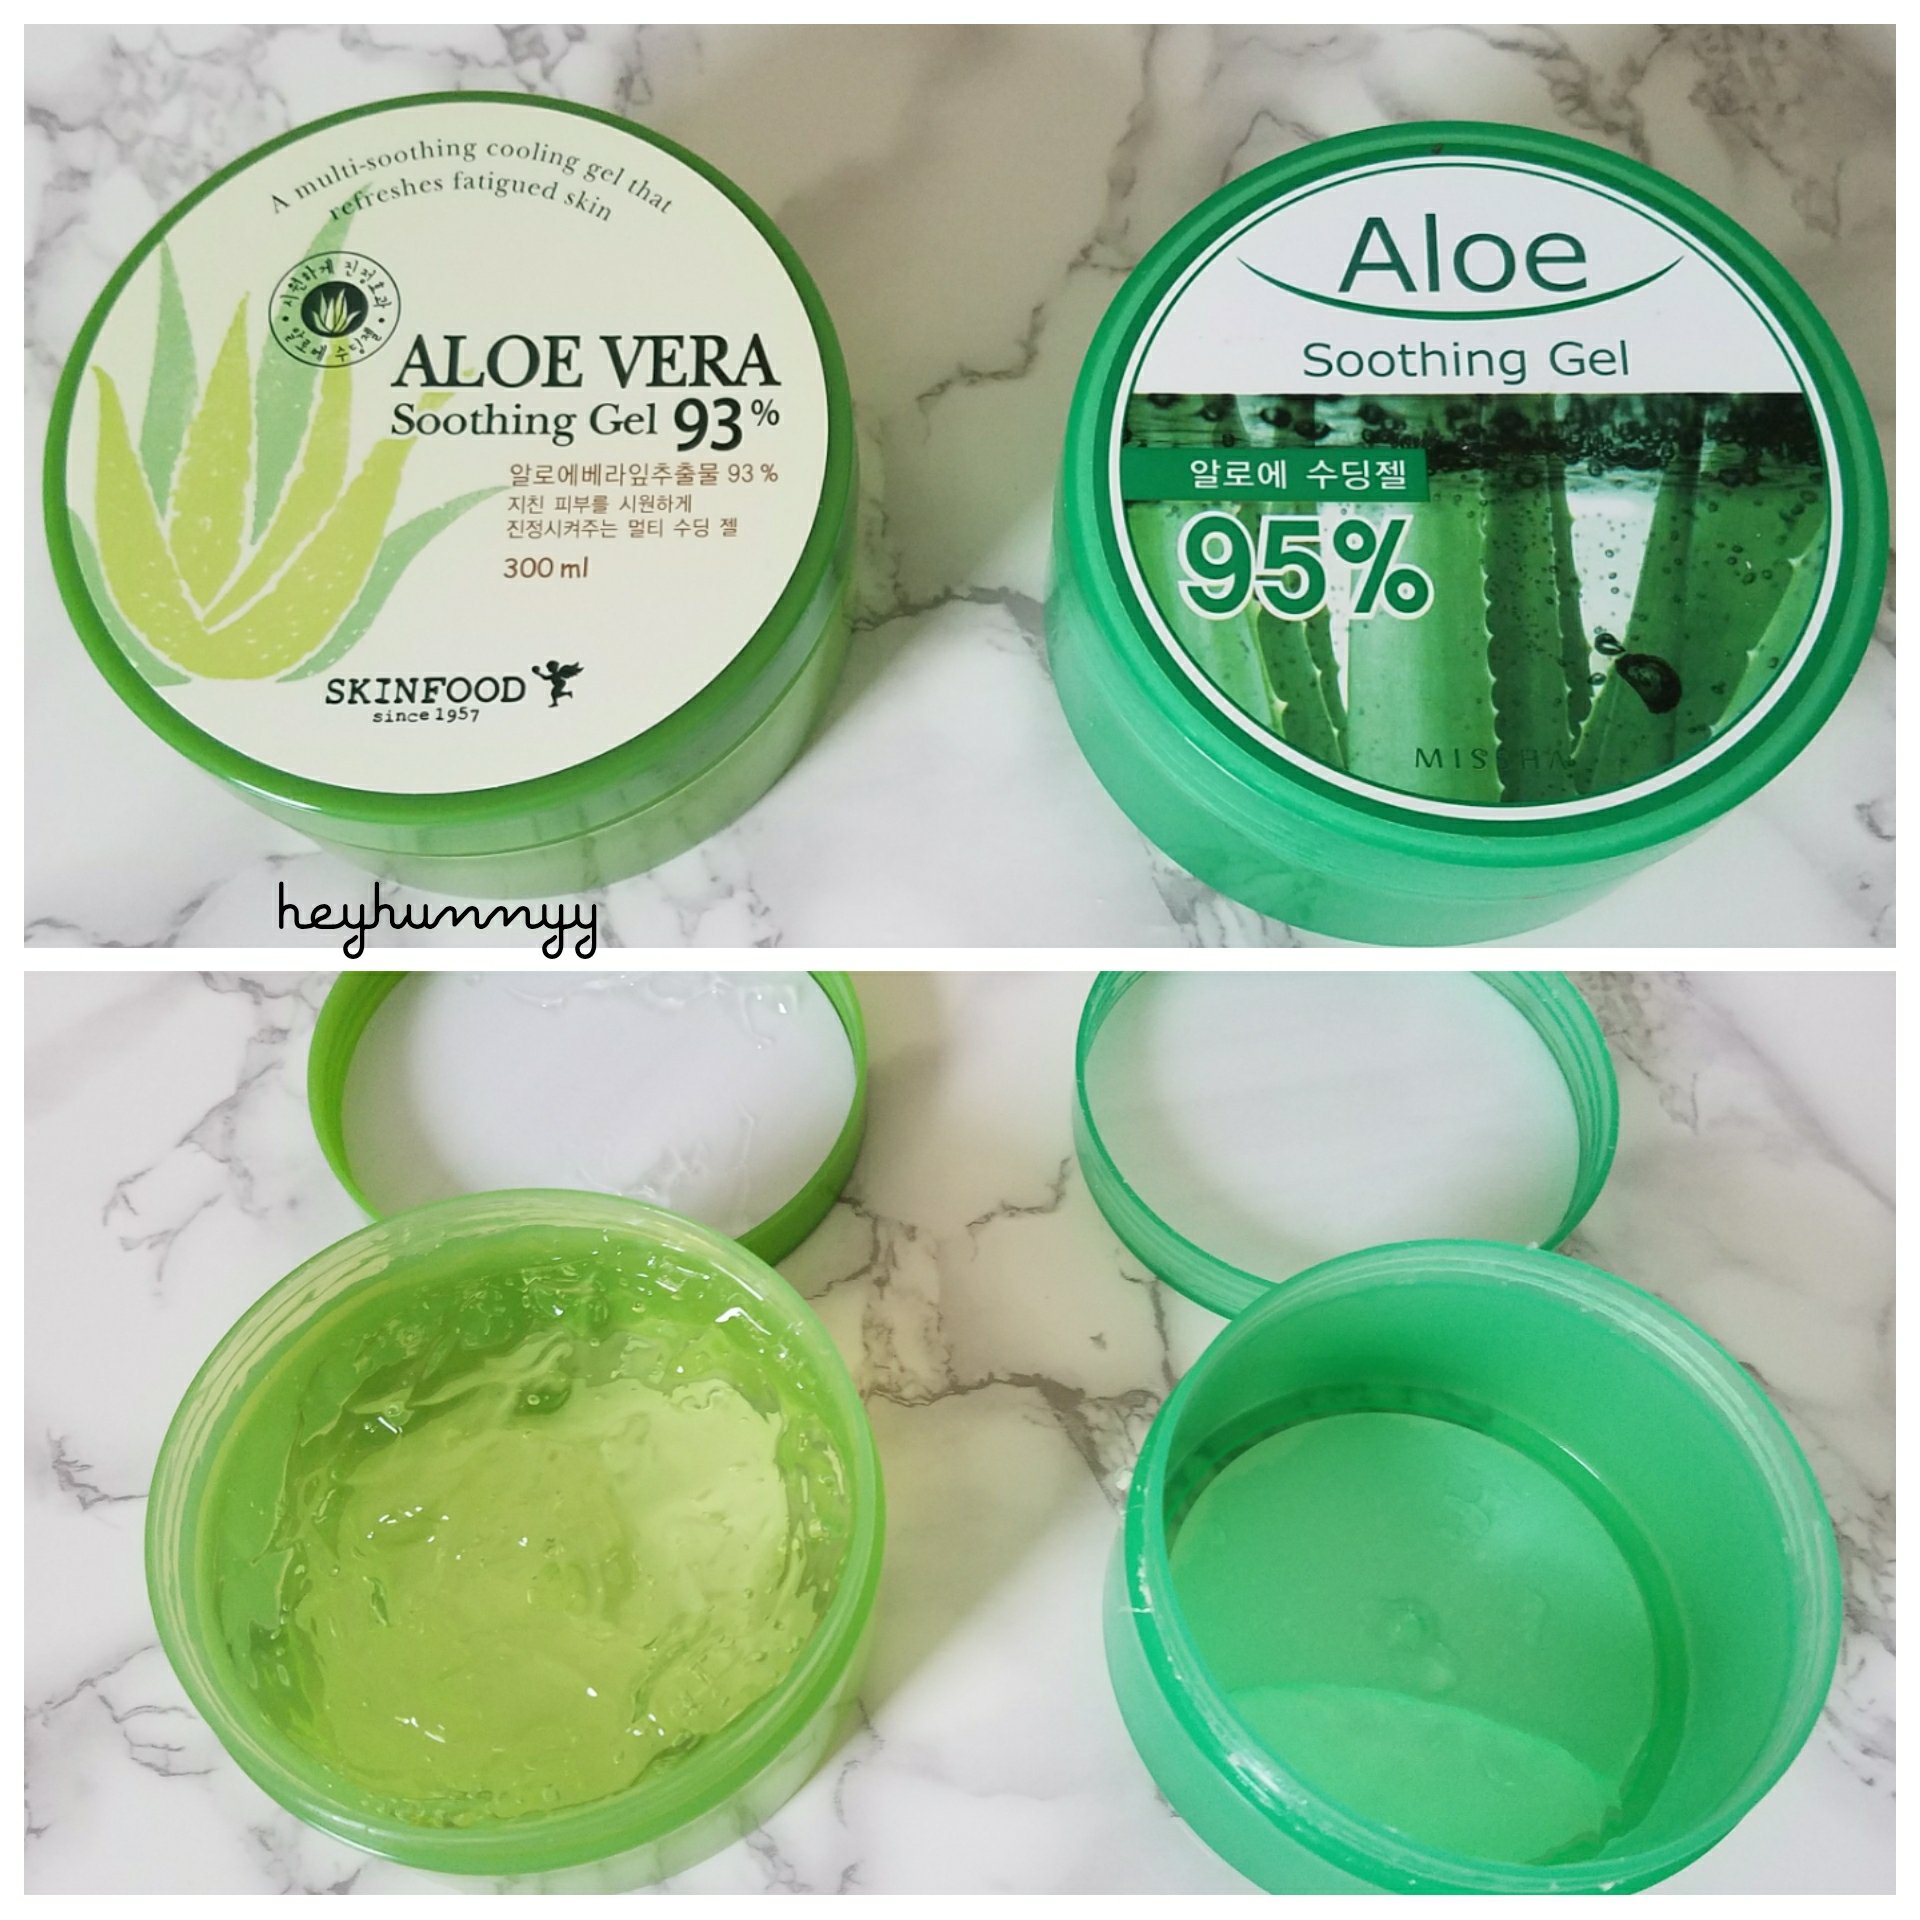 ::HUNNYYBASE:: Is there really a difference between 93% and 95% Aloe?